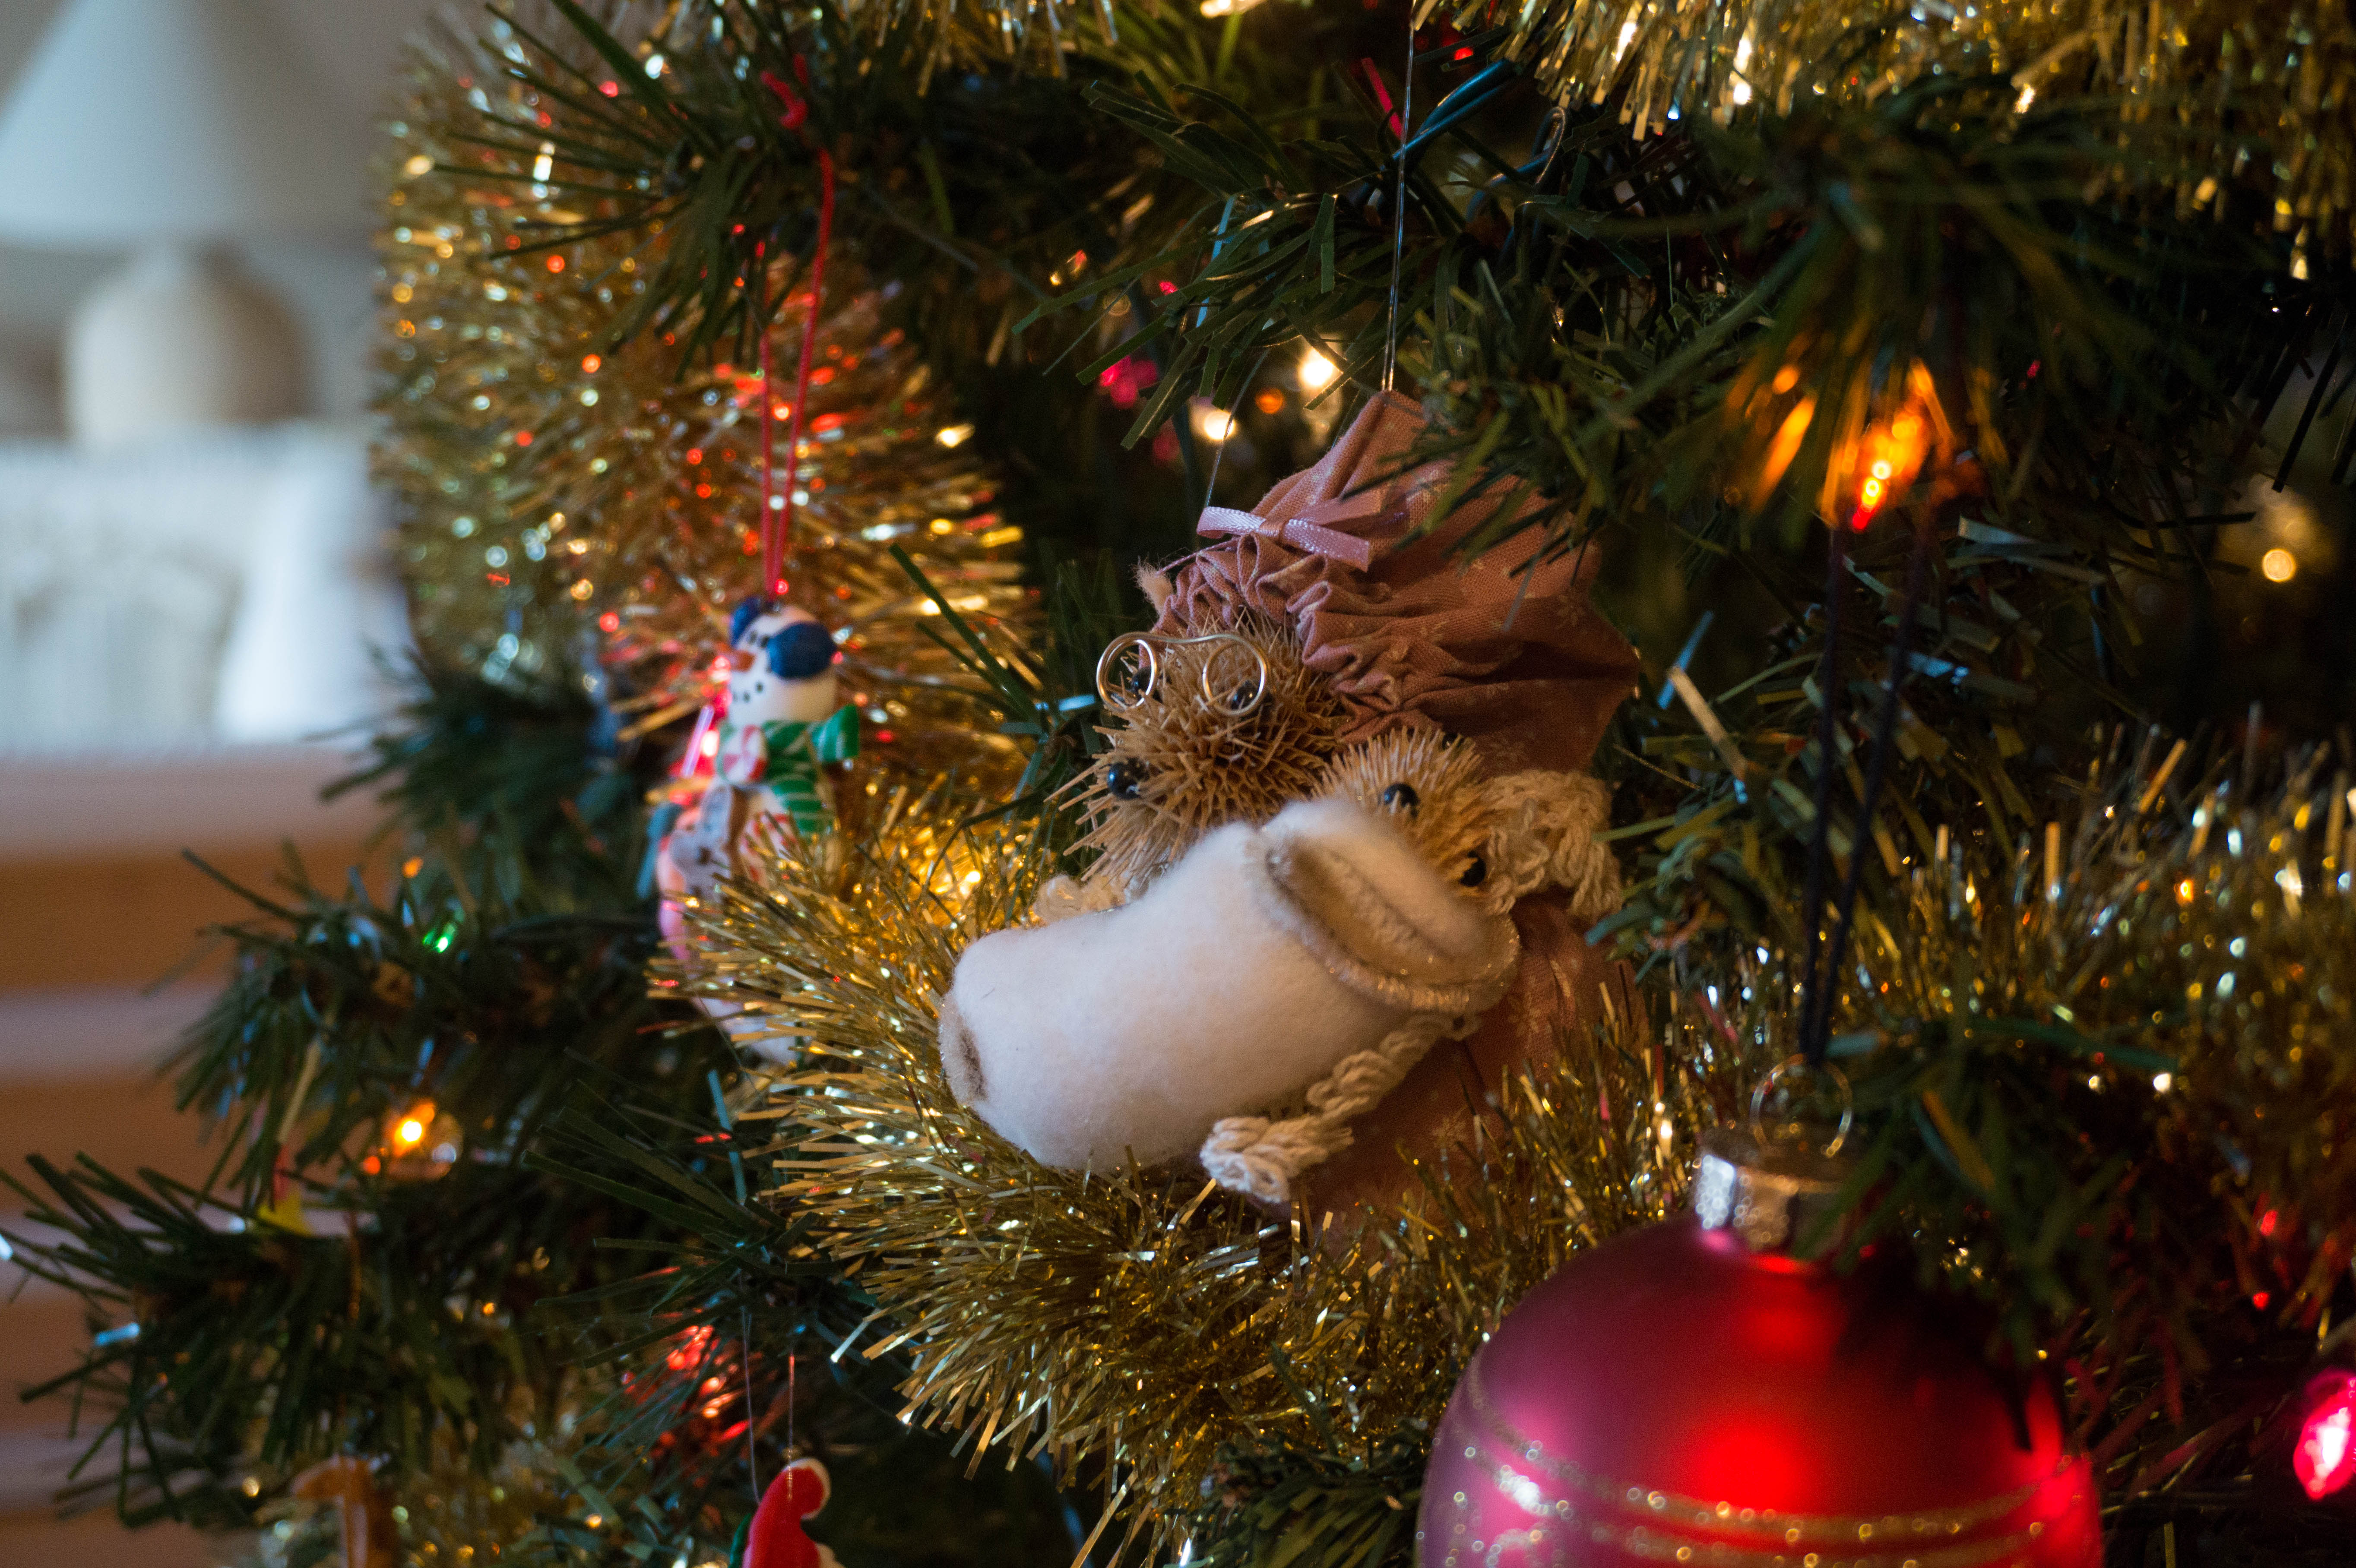 Ornament of mother mouse holding baby hanging on Christmas tree.